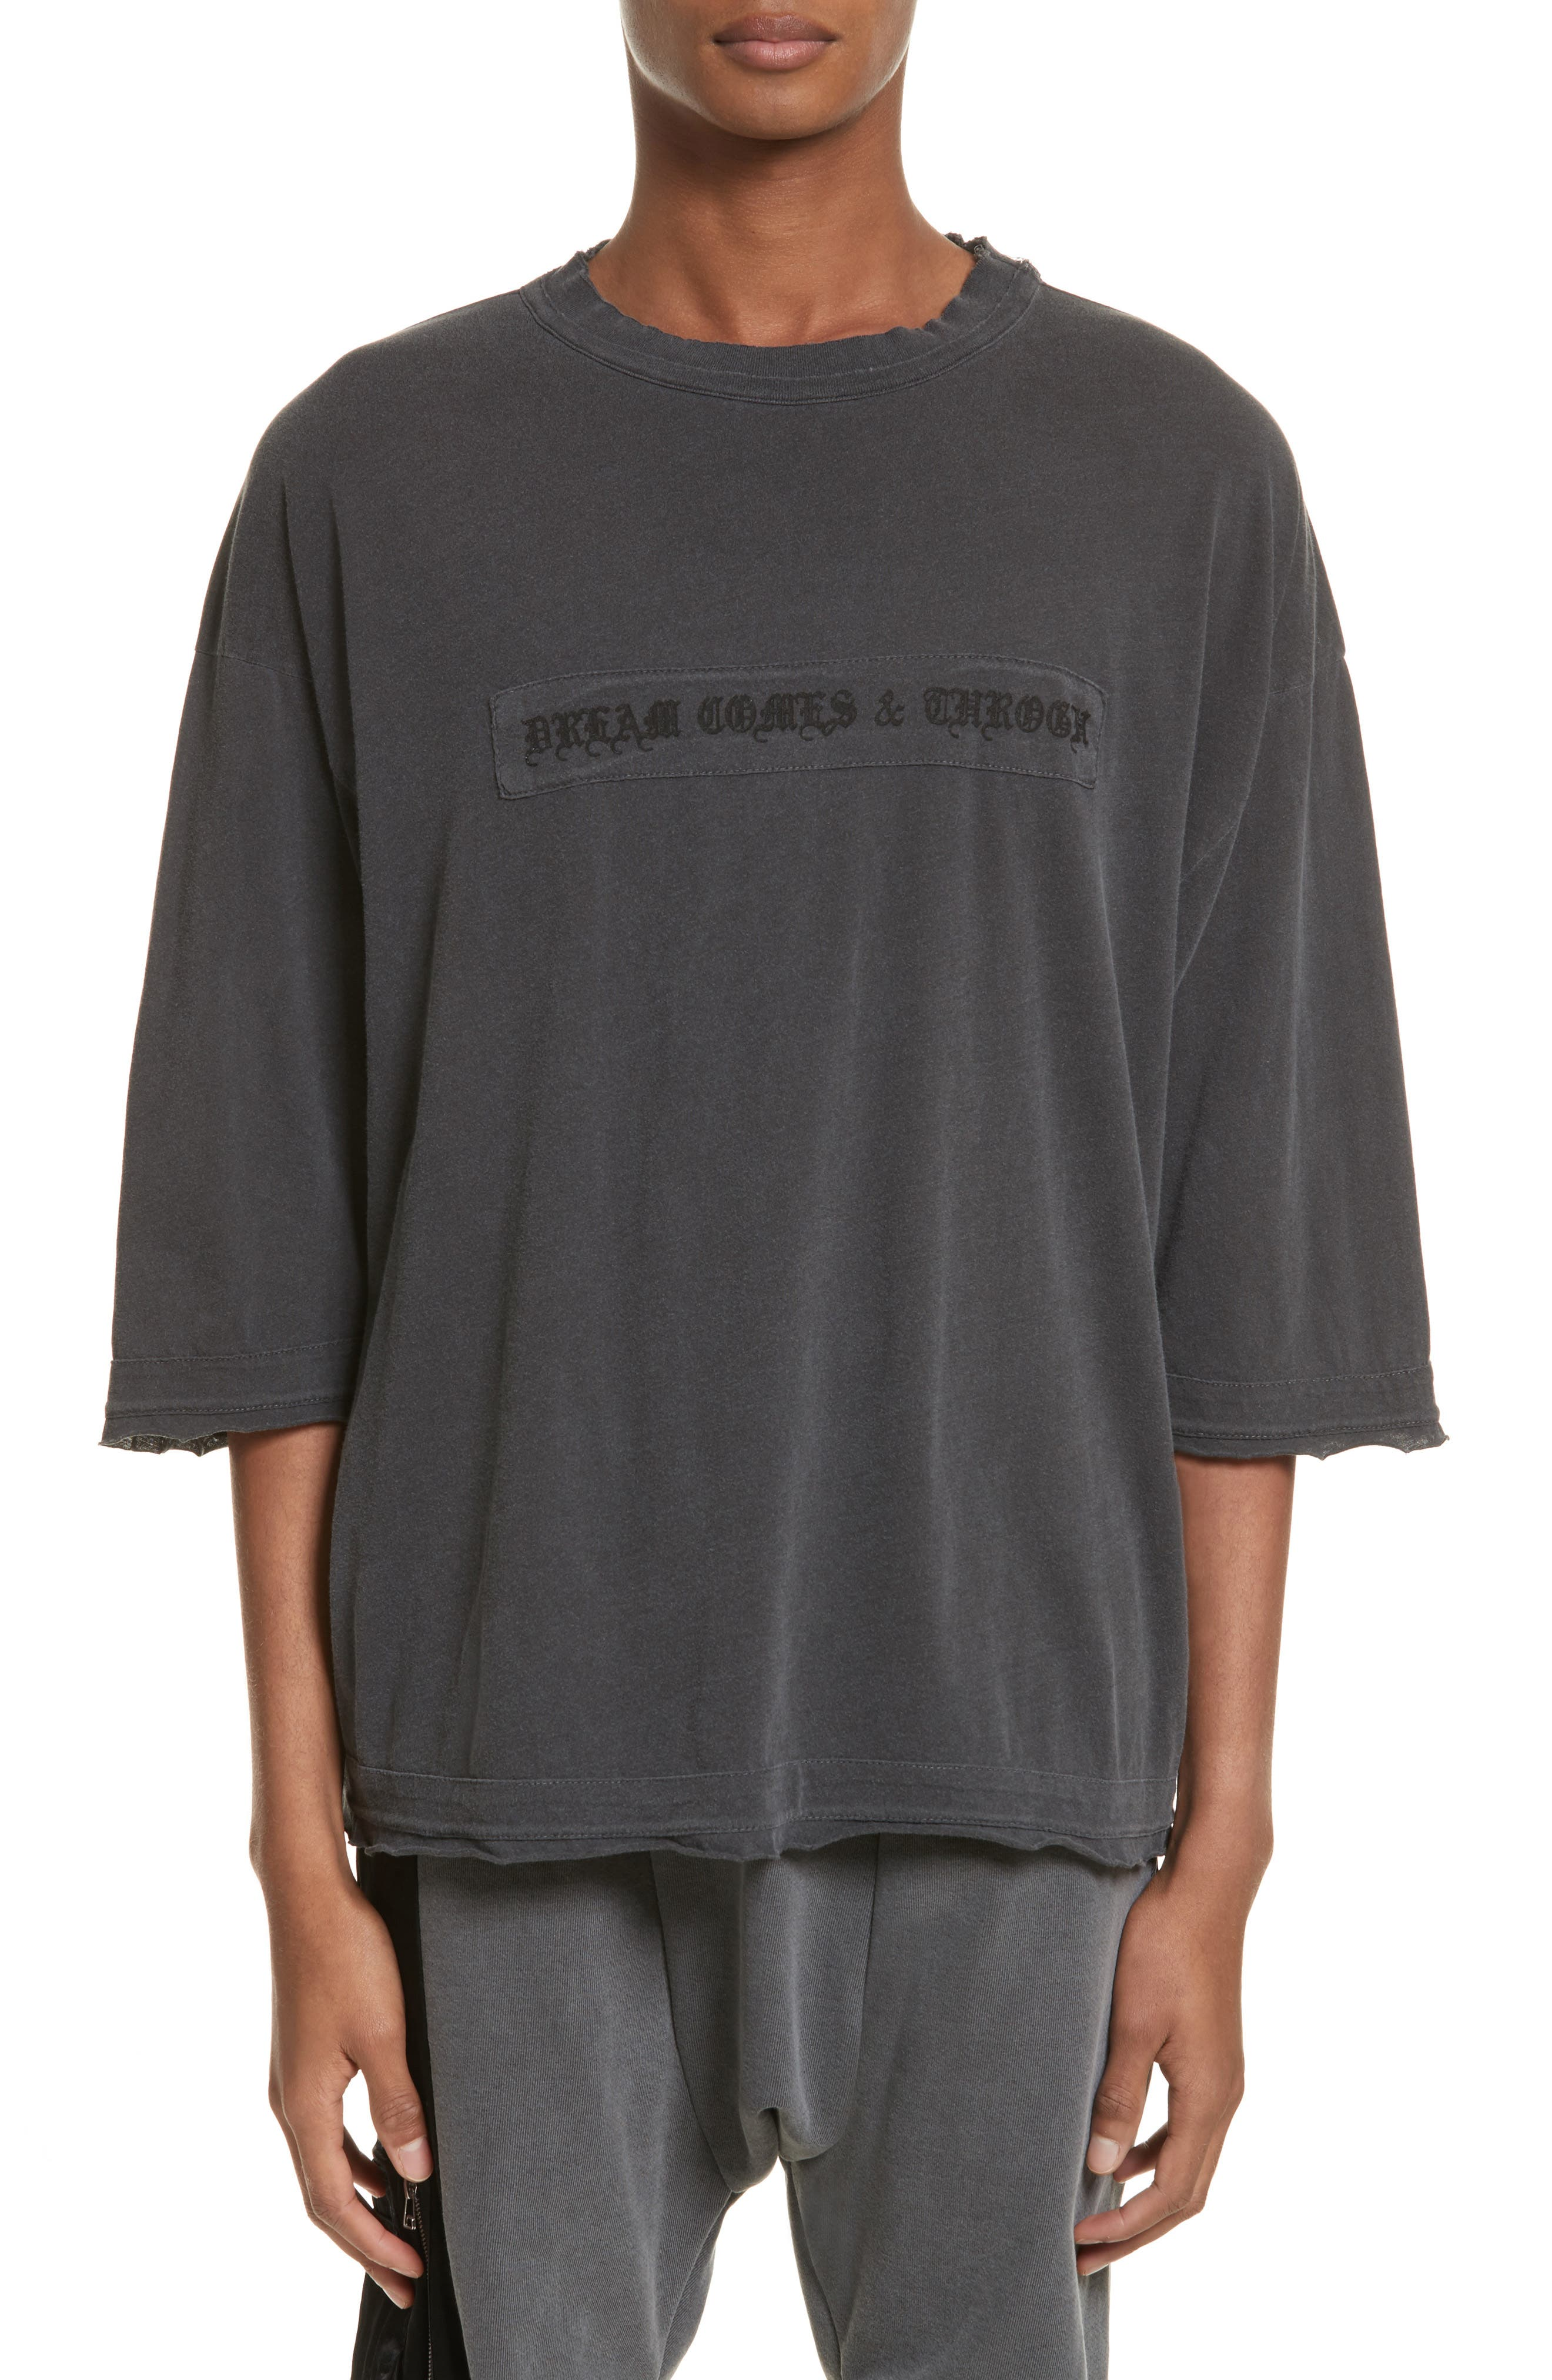 Eshu Oversize T-Shirt,                             Main thumbnail 1, color,                             Black Pigment